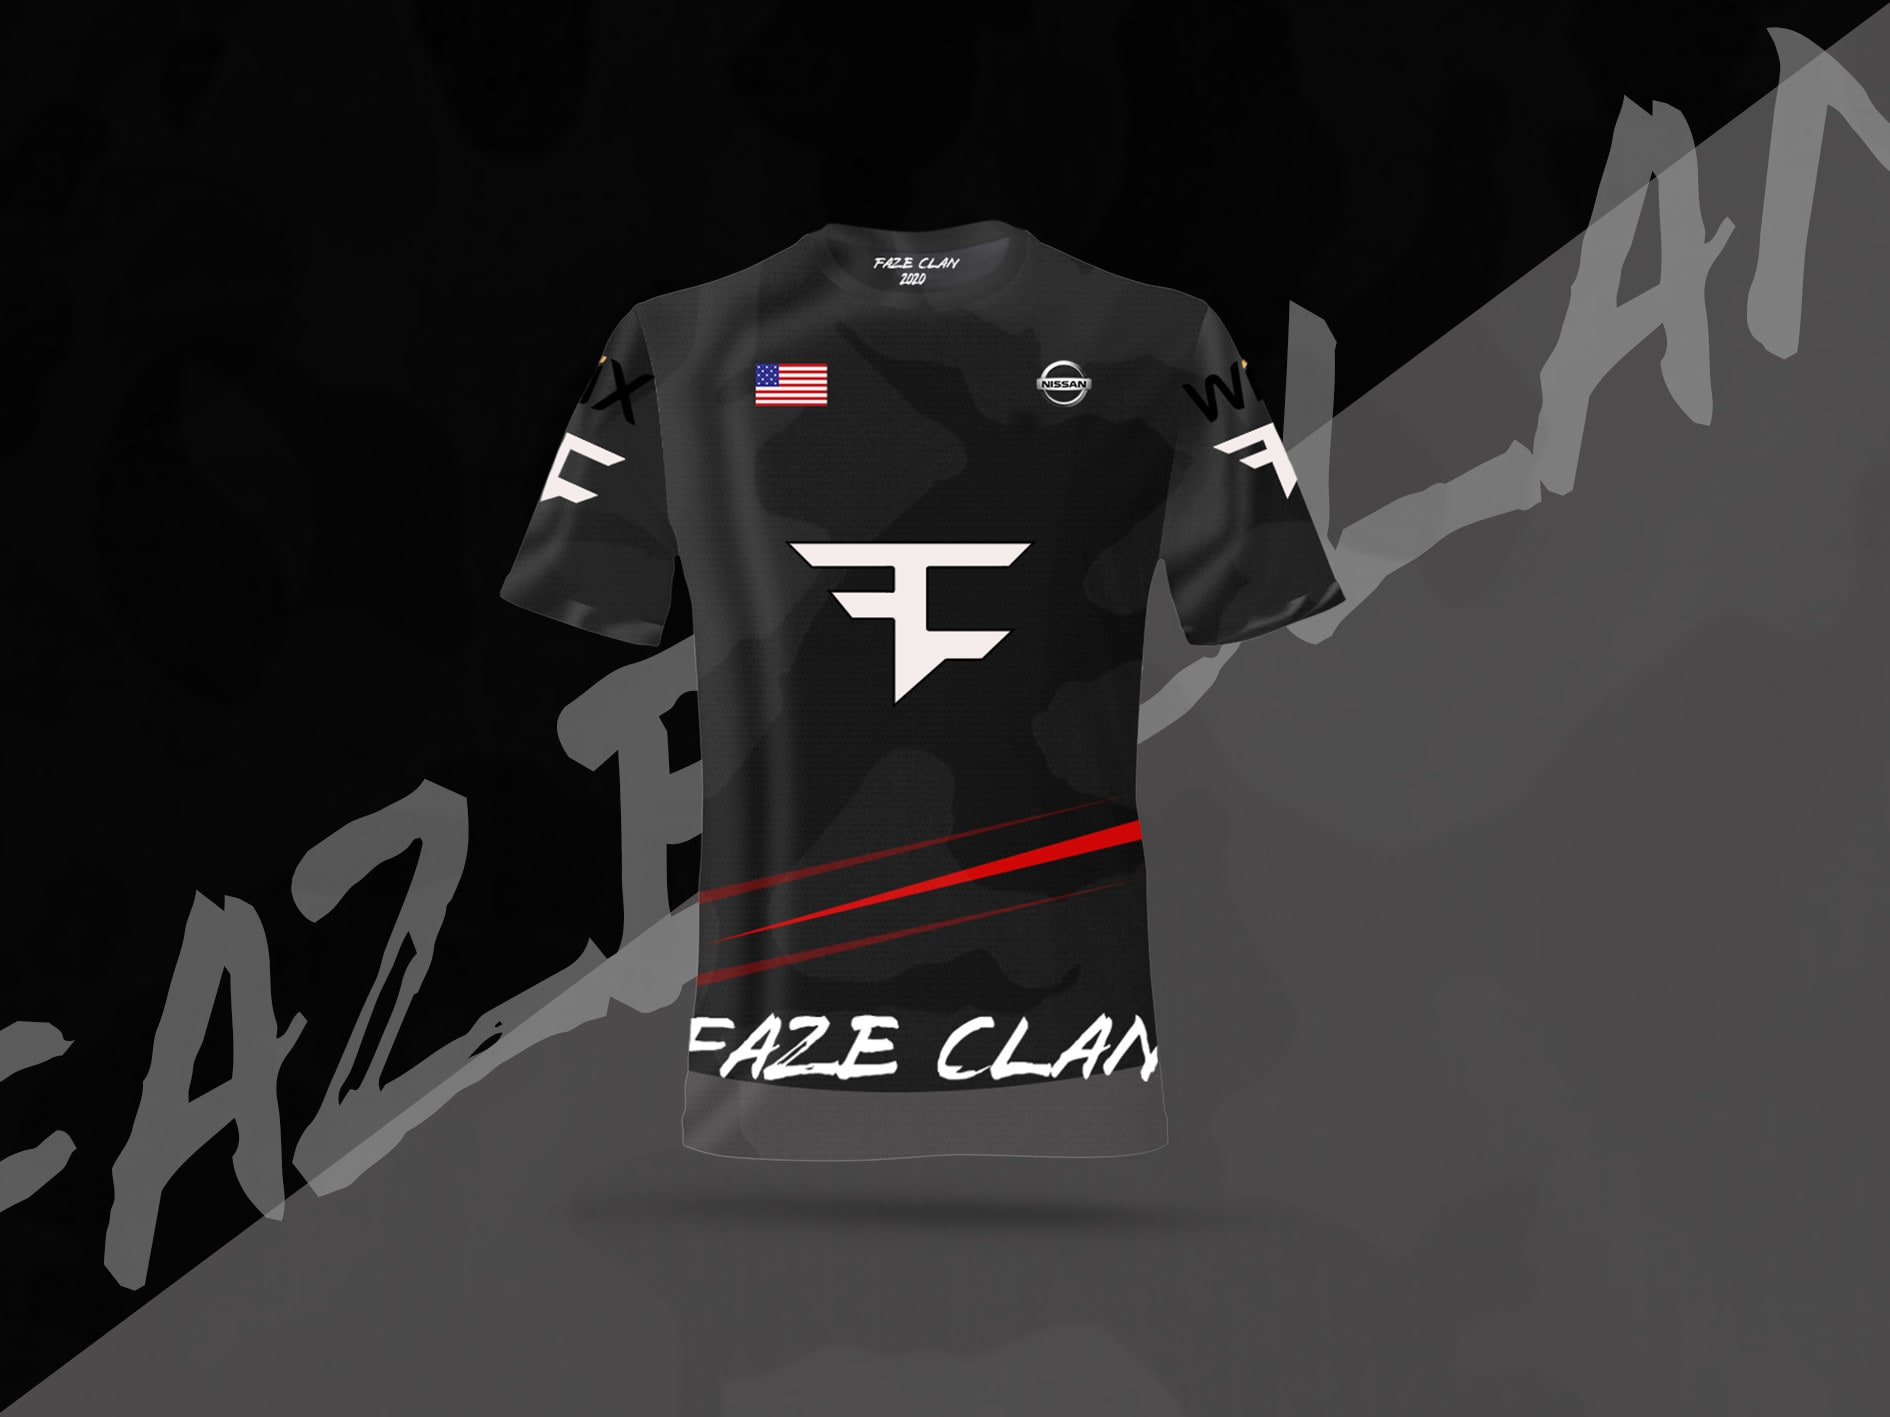 Do professional and clean esports jersey design by Hyp33r | Fiverr